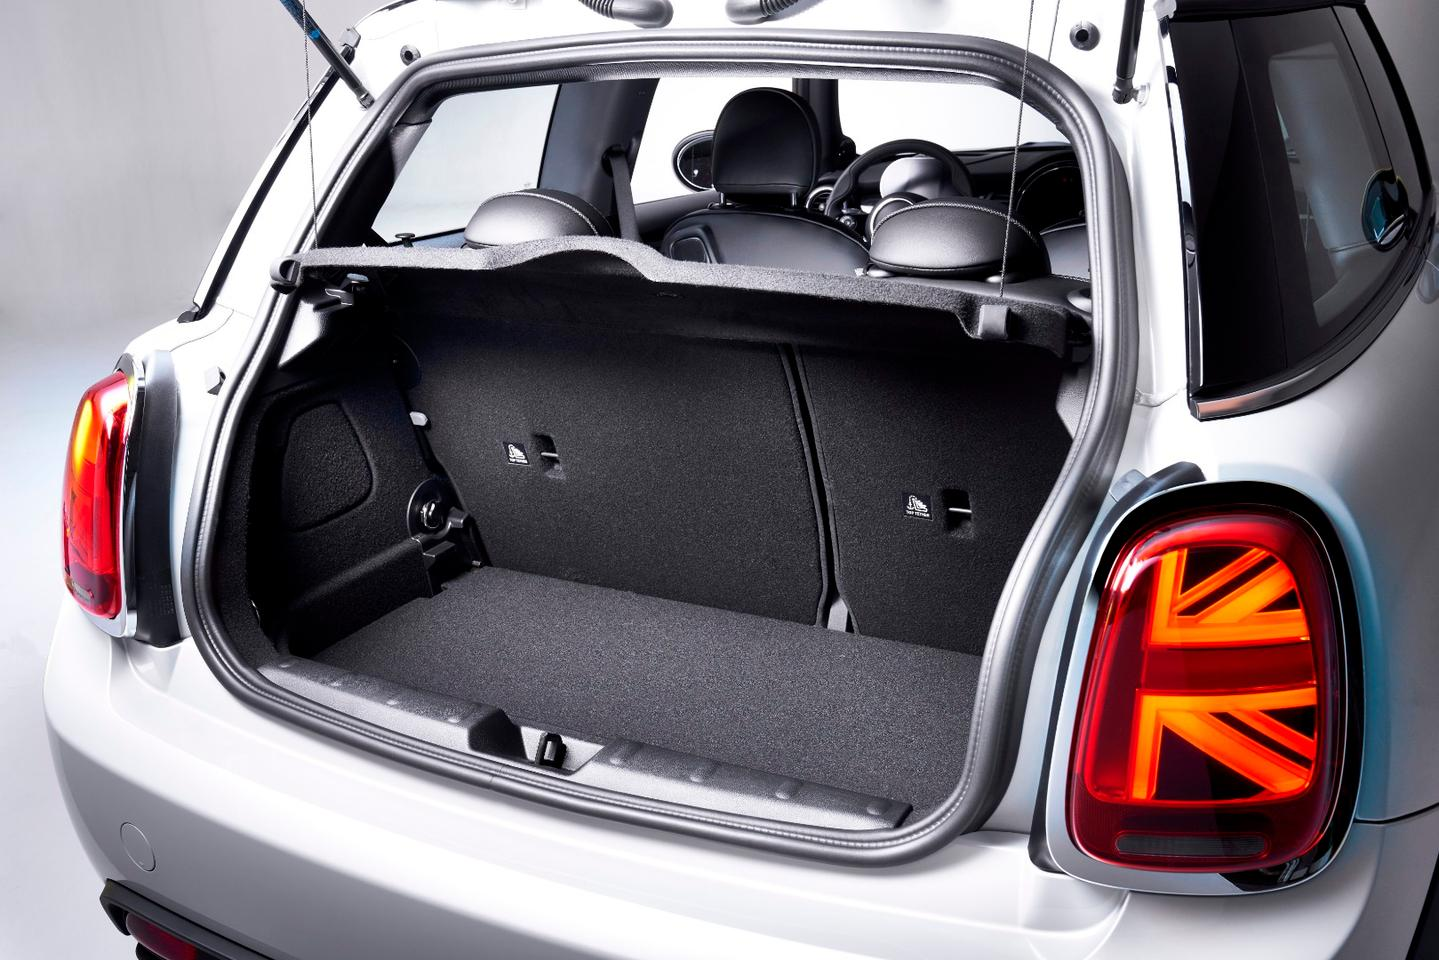 The electric Mini Cooper SE's Cooper-sized rear storage